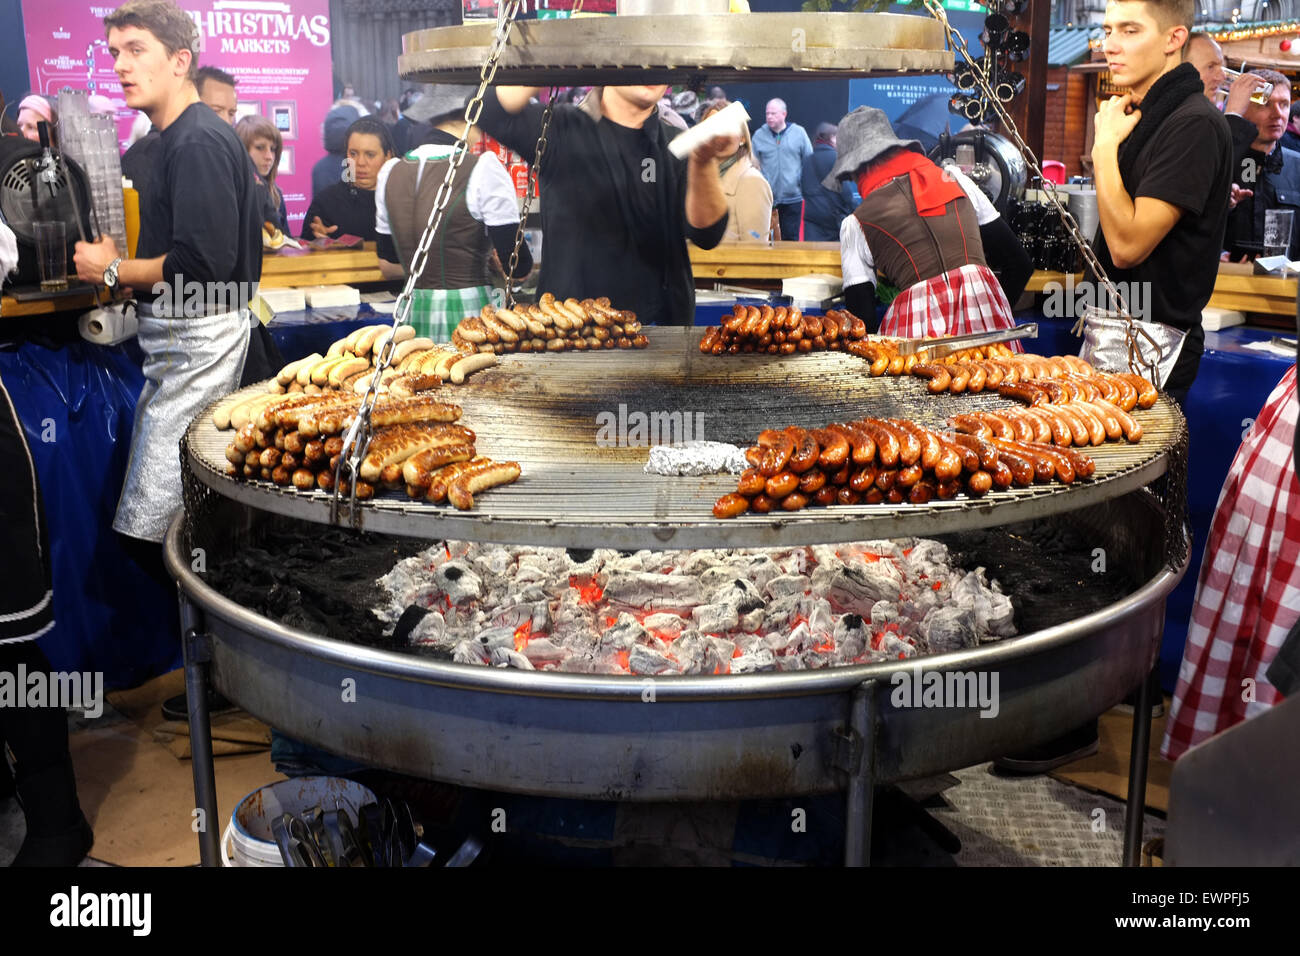 German Barbecue sausage stall at the Christmas Market in Albert Square, Manchester, England UK - Stock Image